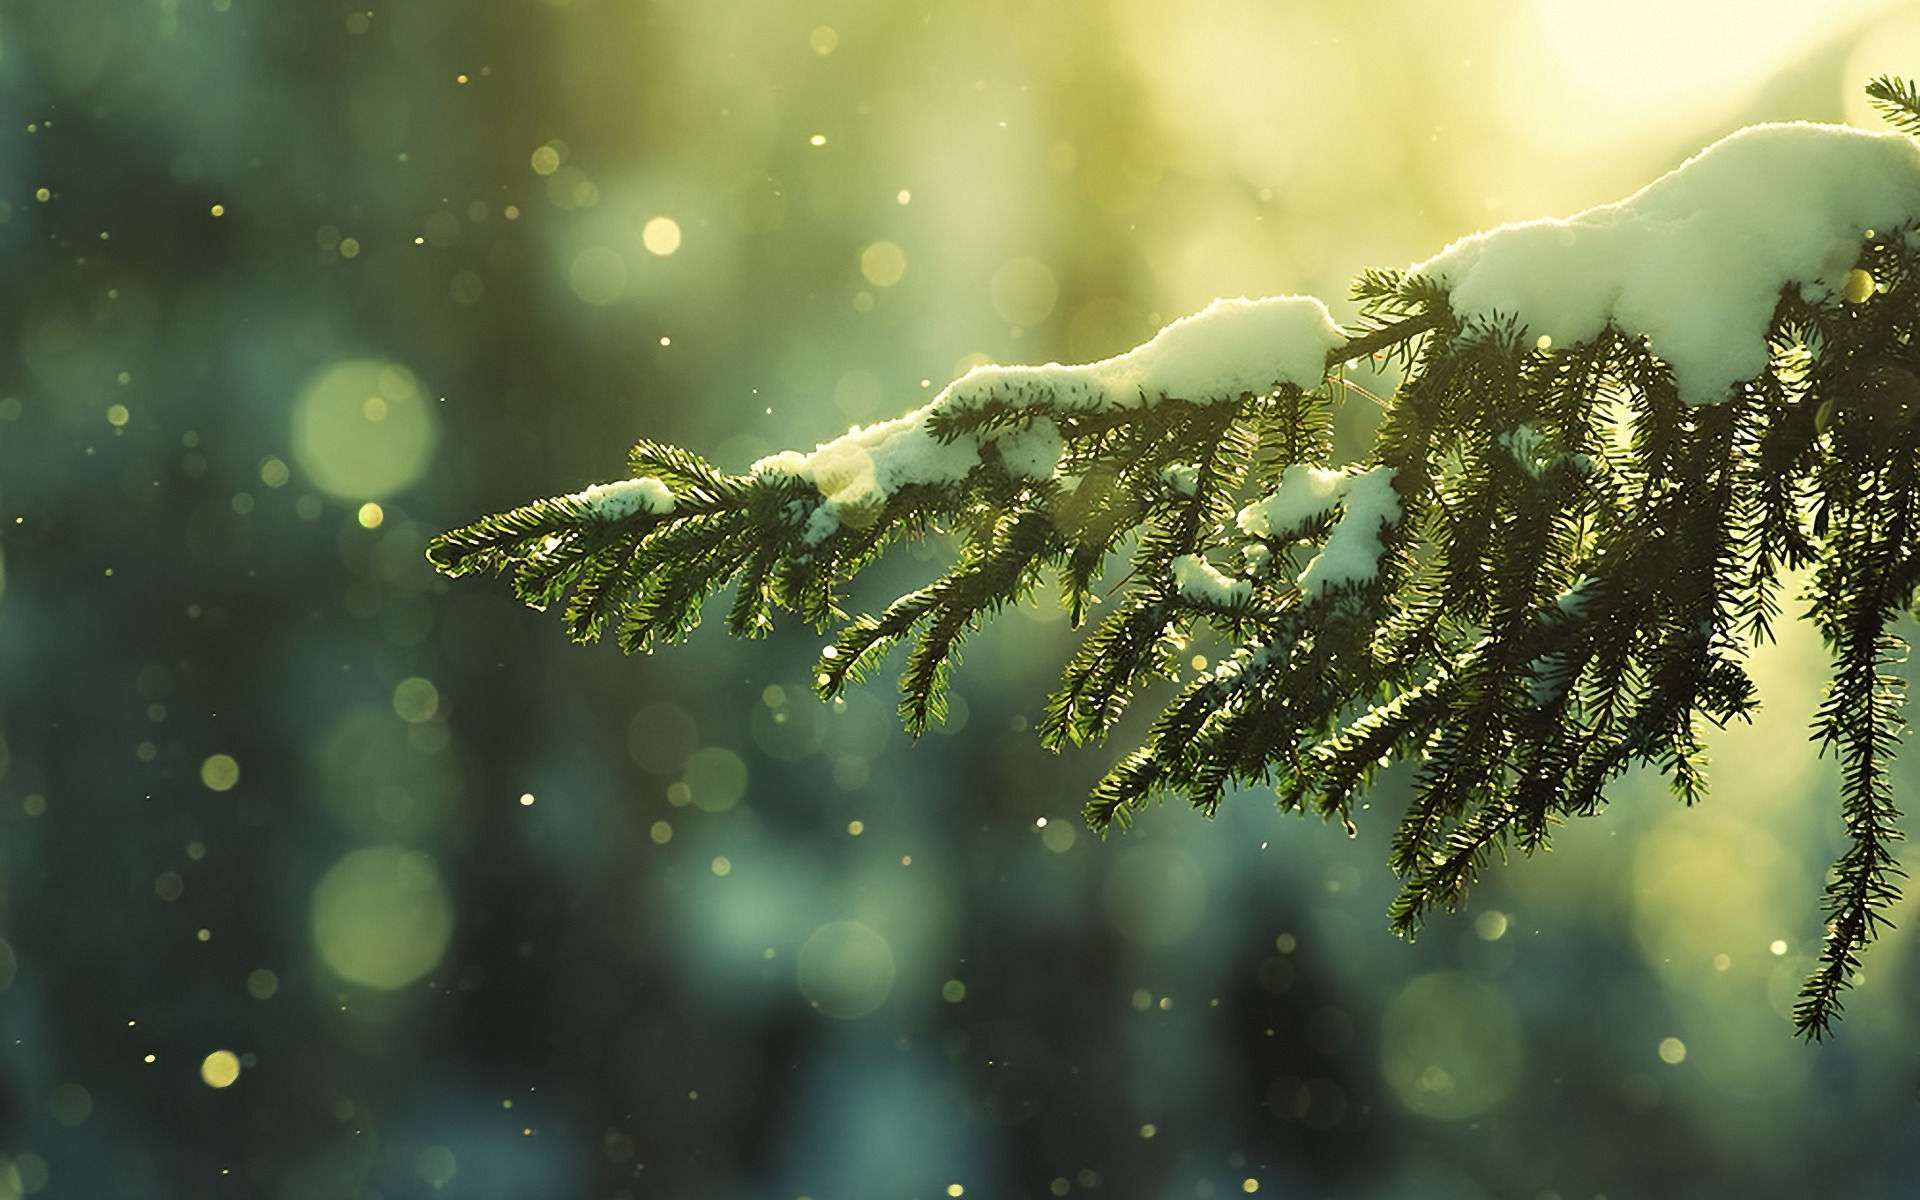 Winter Wallpaper 003